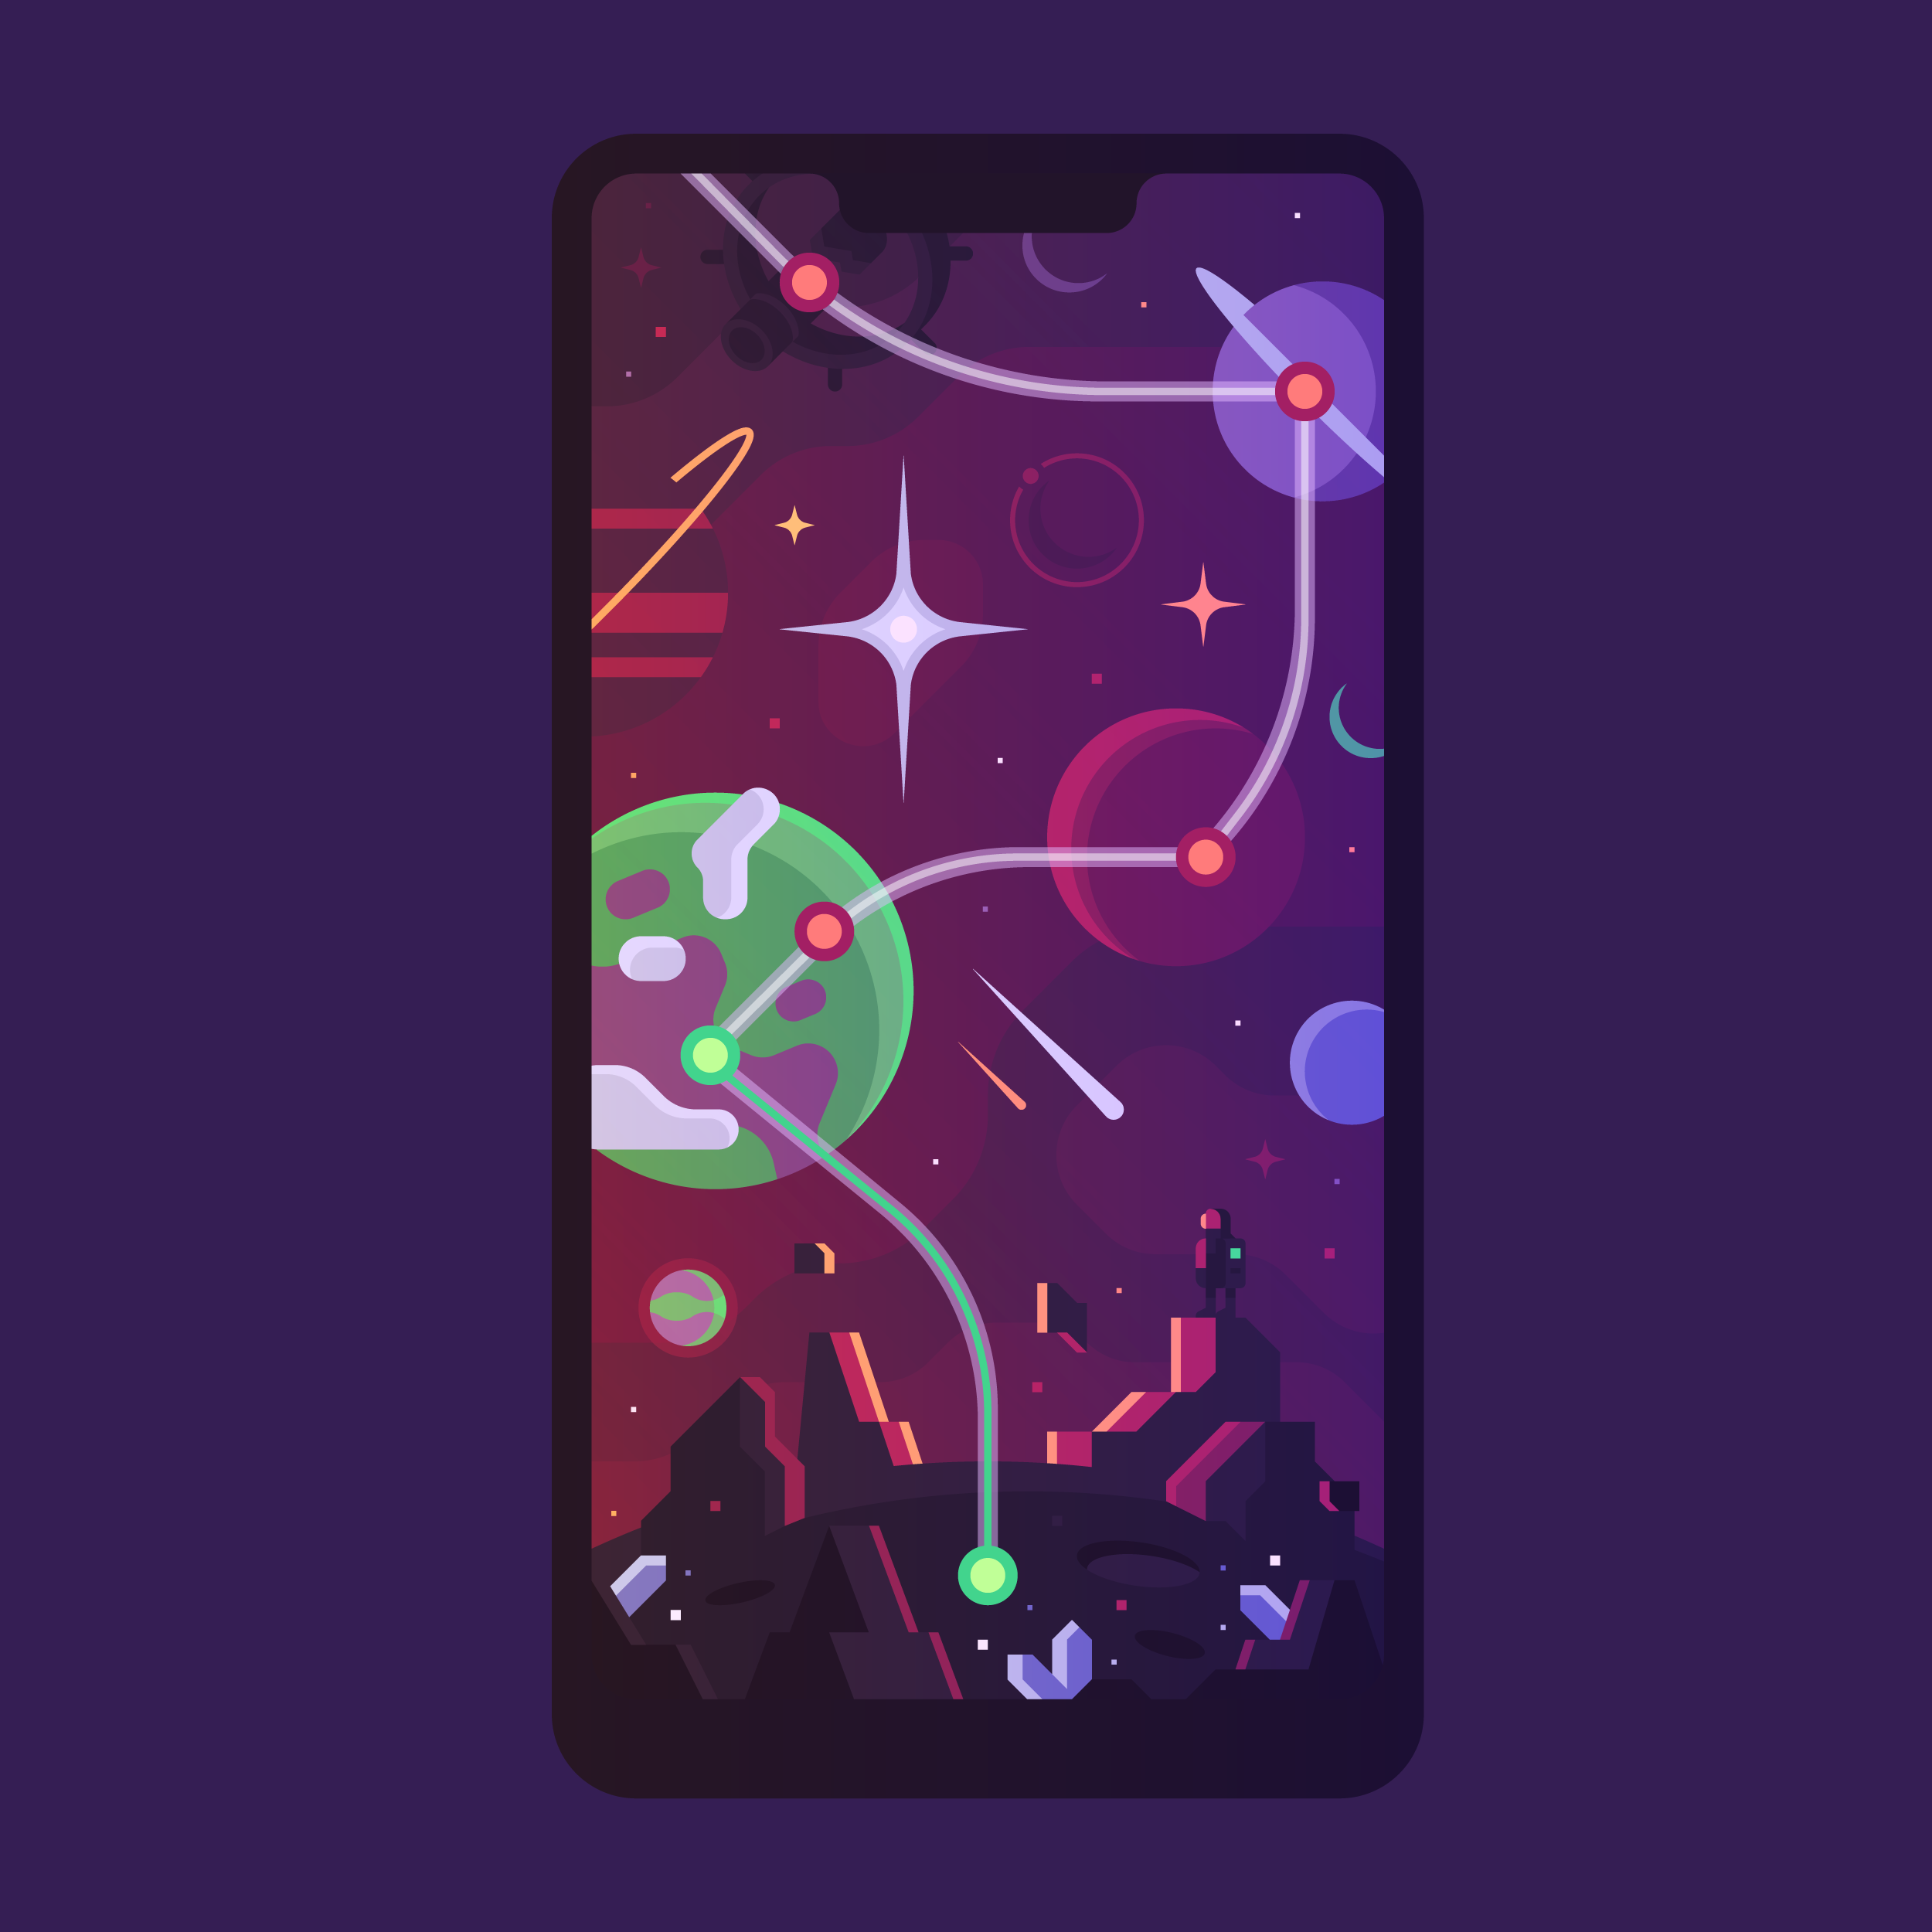 This design shows how the player would travel to different planets, space stations and more.